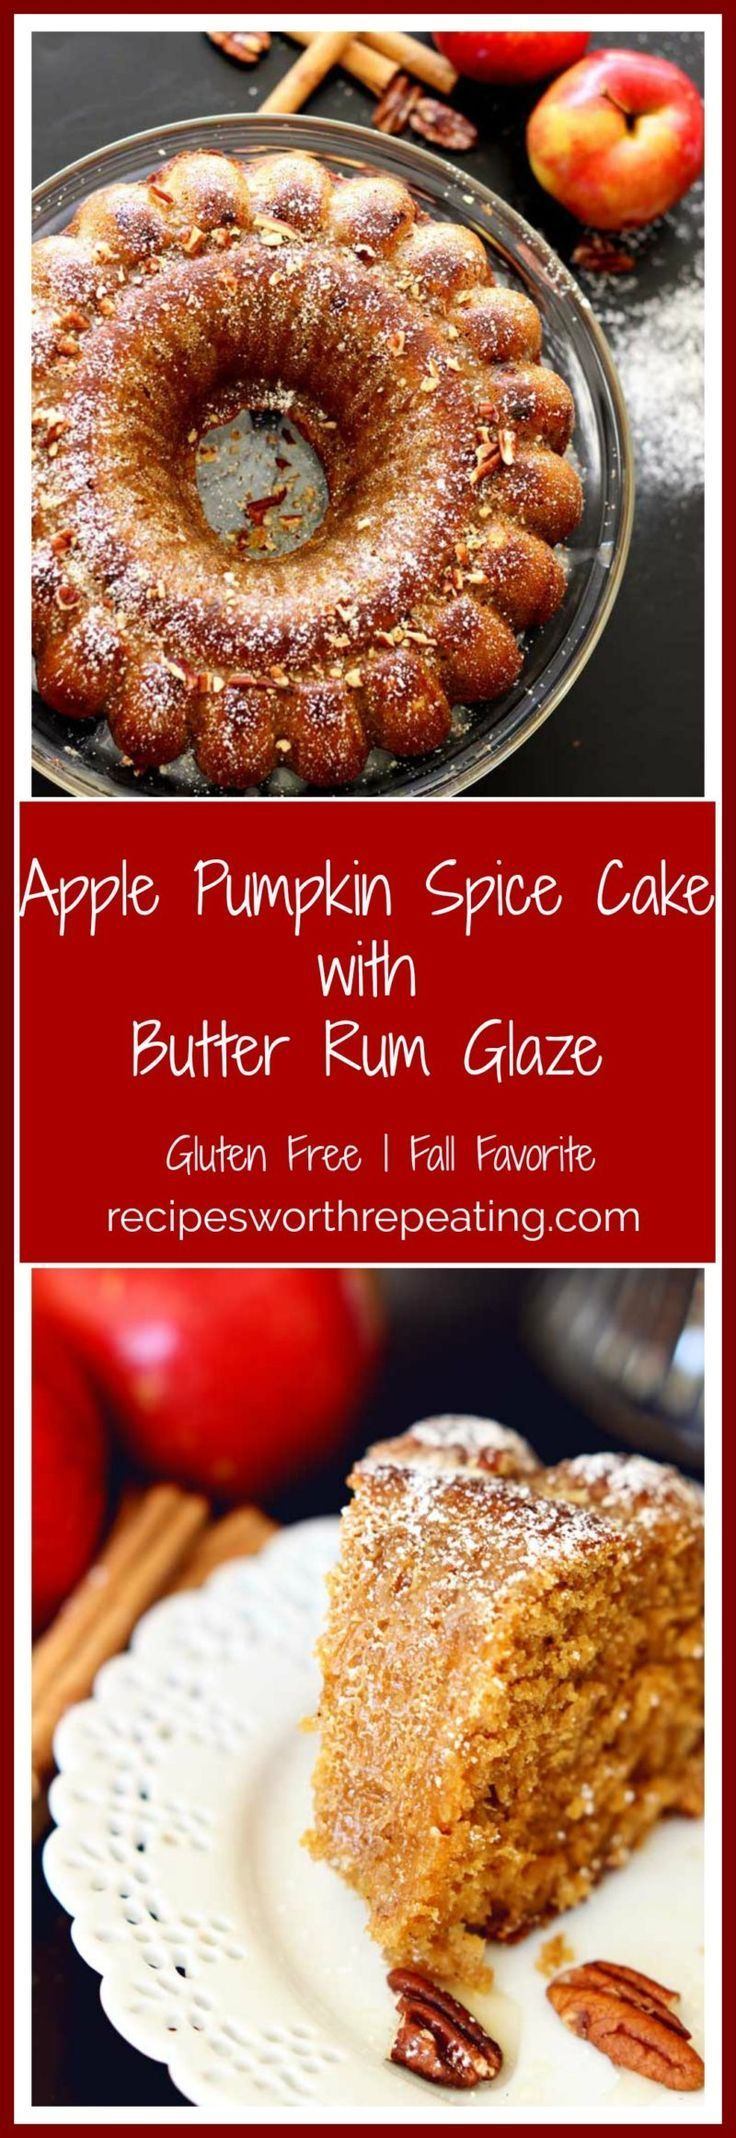 With all the wonderful Fall flavors going on right now, you're guaranteed to love this homemade Apple Pumpkin Spice cake! Apples and pumpkin are in season right now and they pair so perfectly together! Mix in some ground cinnamon, clove and nutmeg…top it with a creamy butter and spiced rum glaze and this homestyle bundt cake is guaranteed to be one of your families Fall favorites!